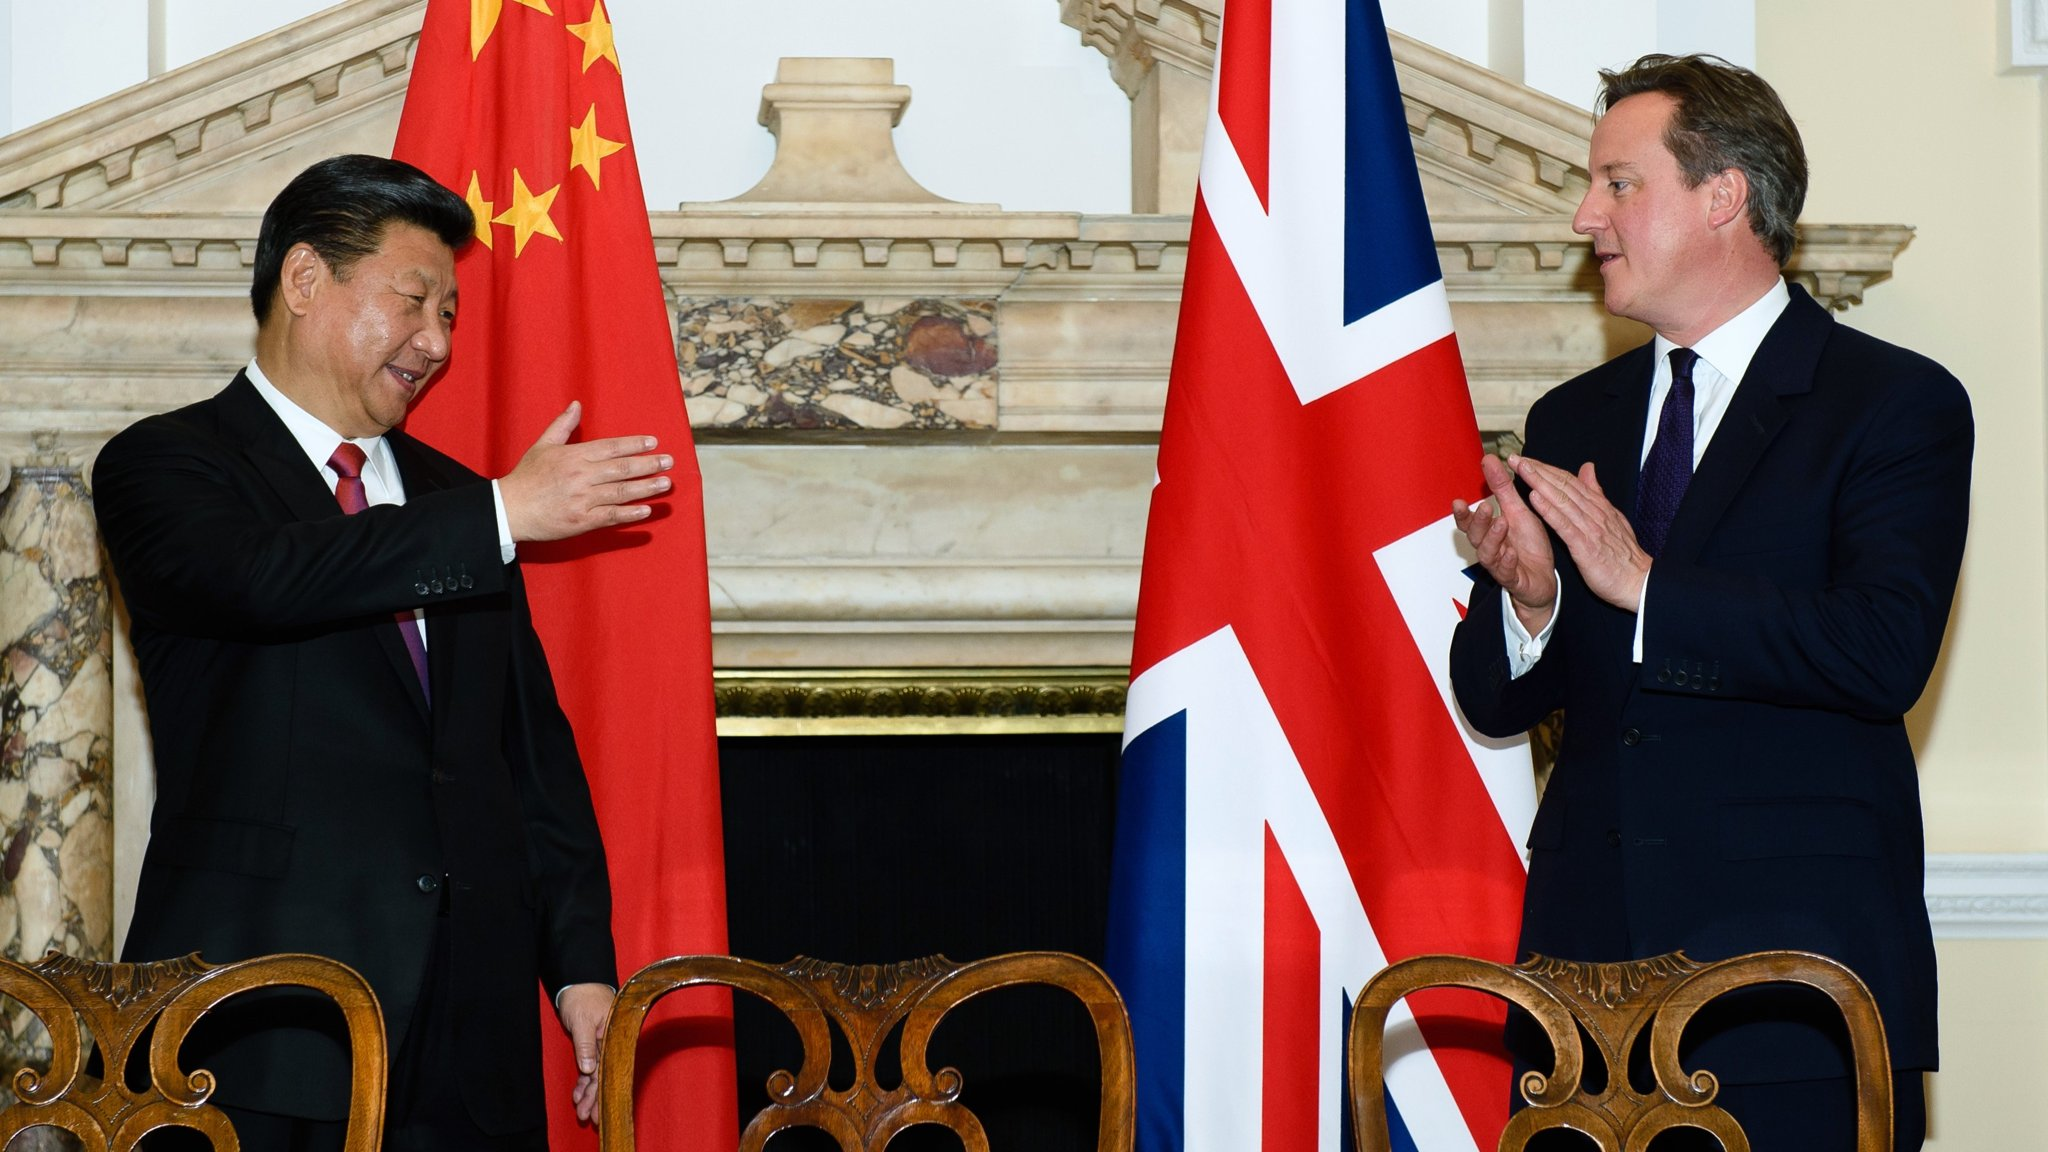 David Cameron rejects criticism on China relations